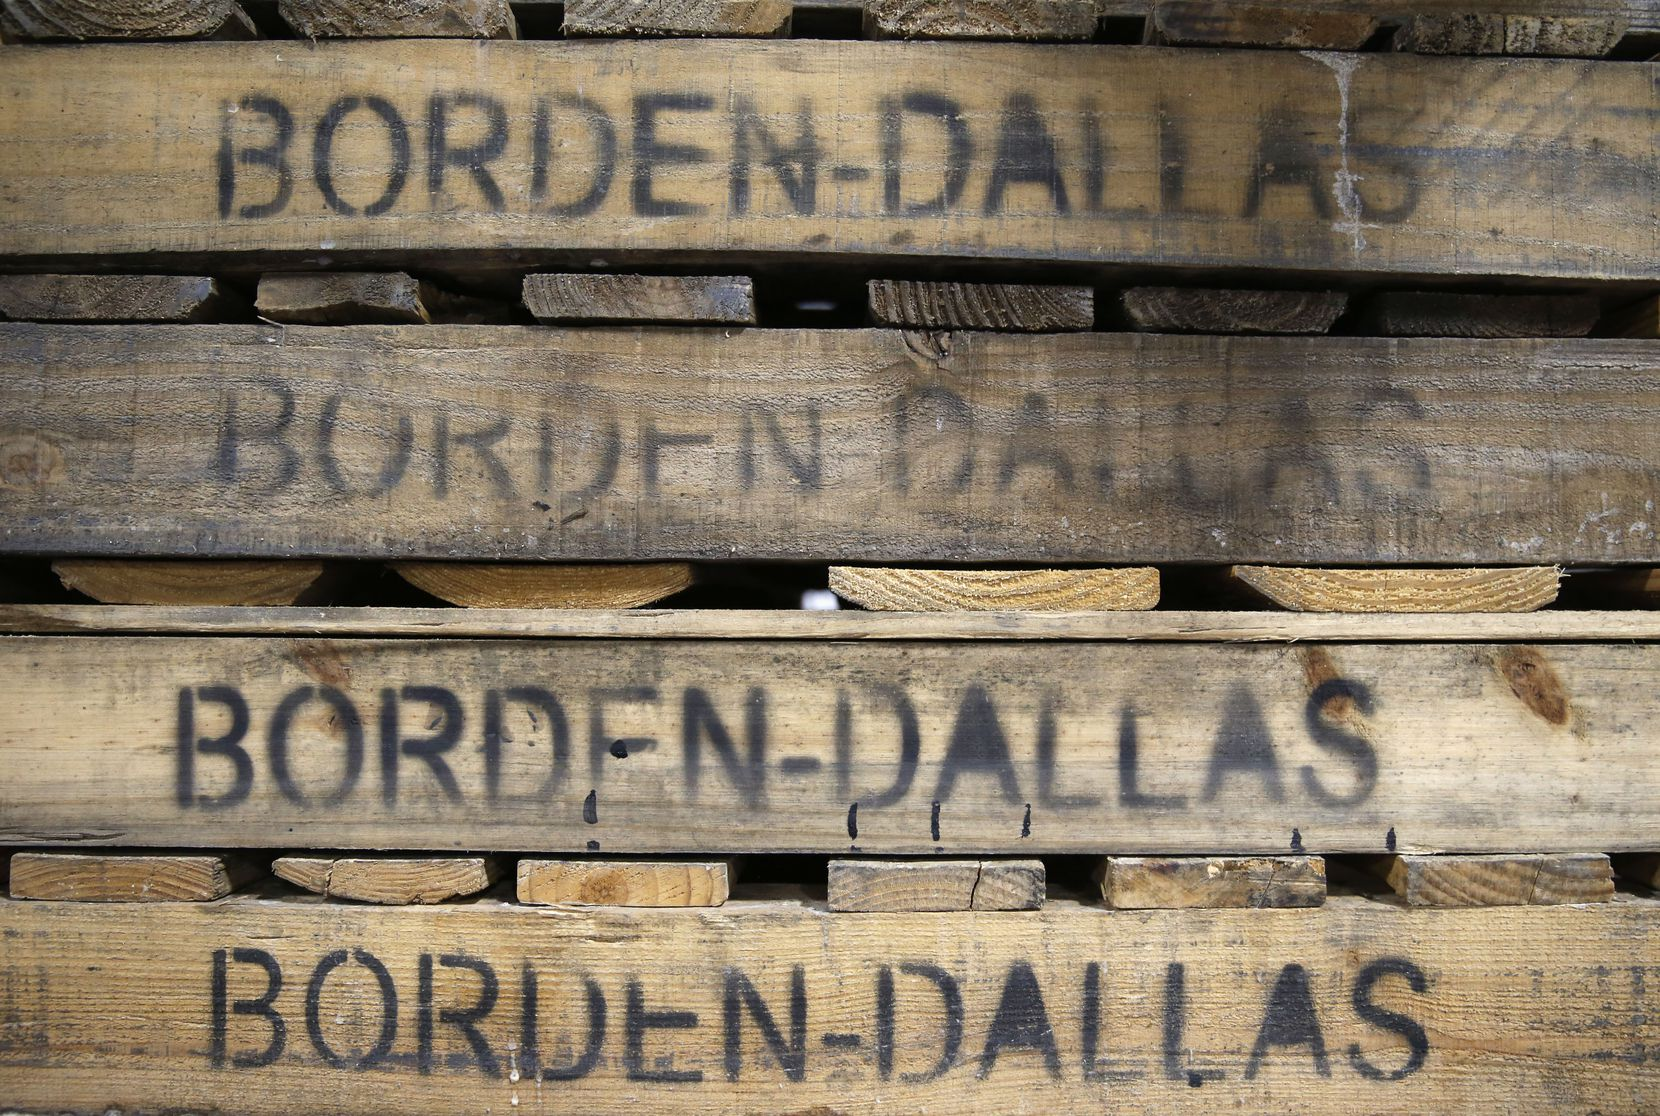 Pallets at Borden Dairy Co. in Dallas.